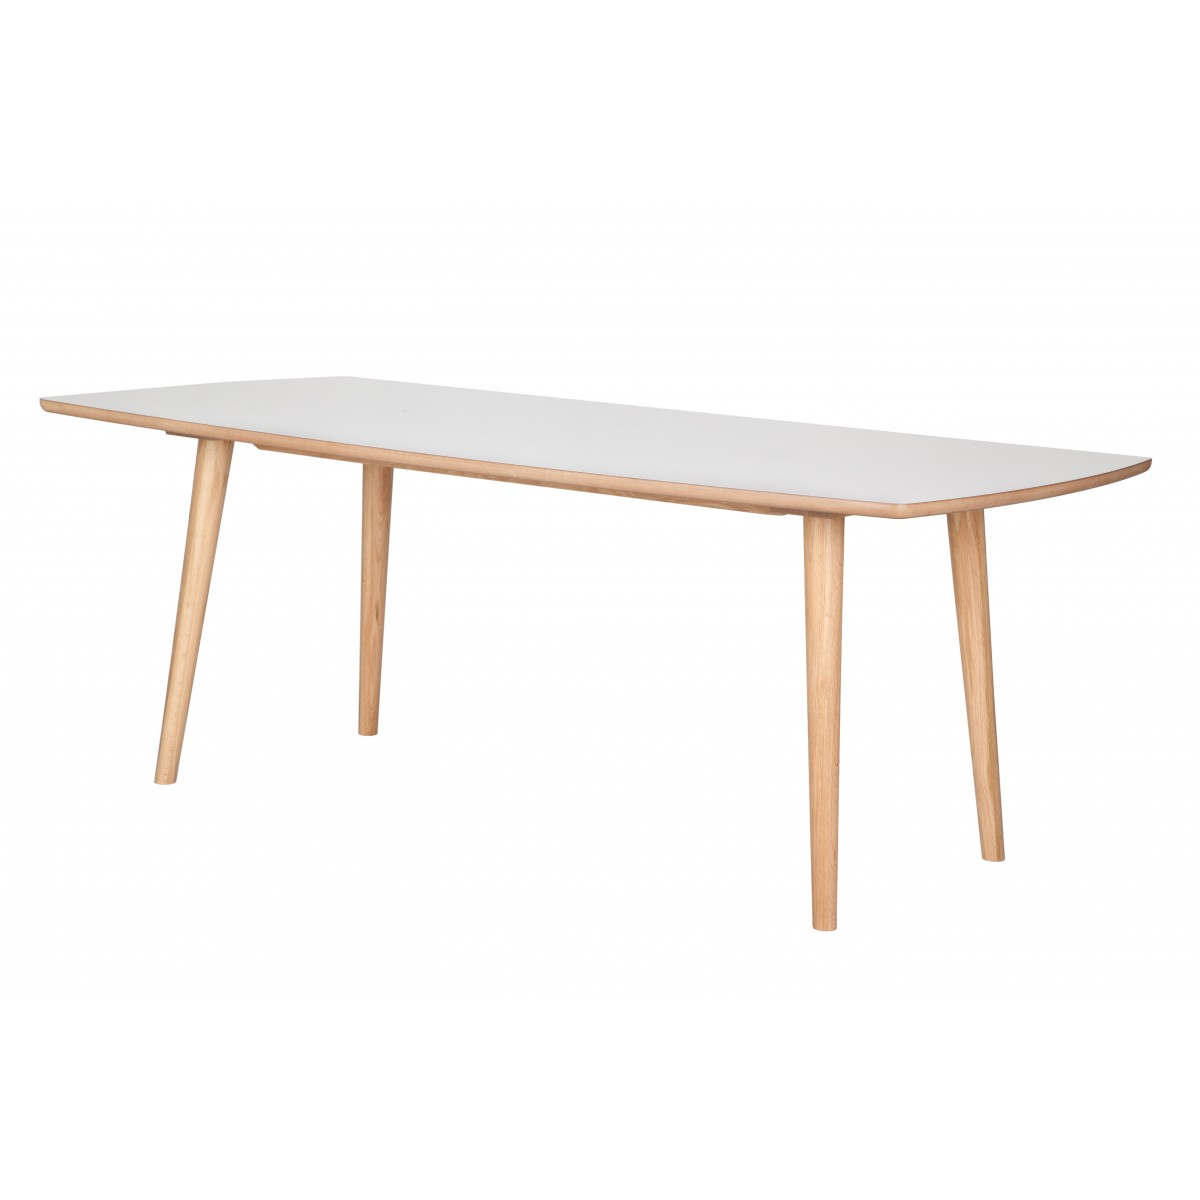 Table en ch ne et plateau en formica style contemporain for Table rectangulaire scandinave